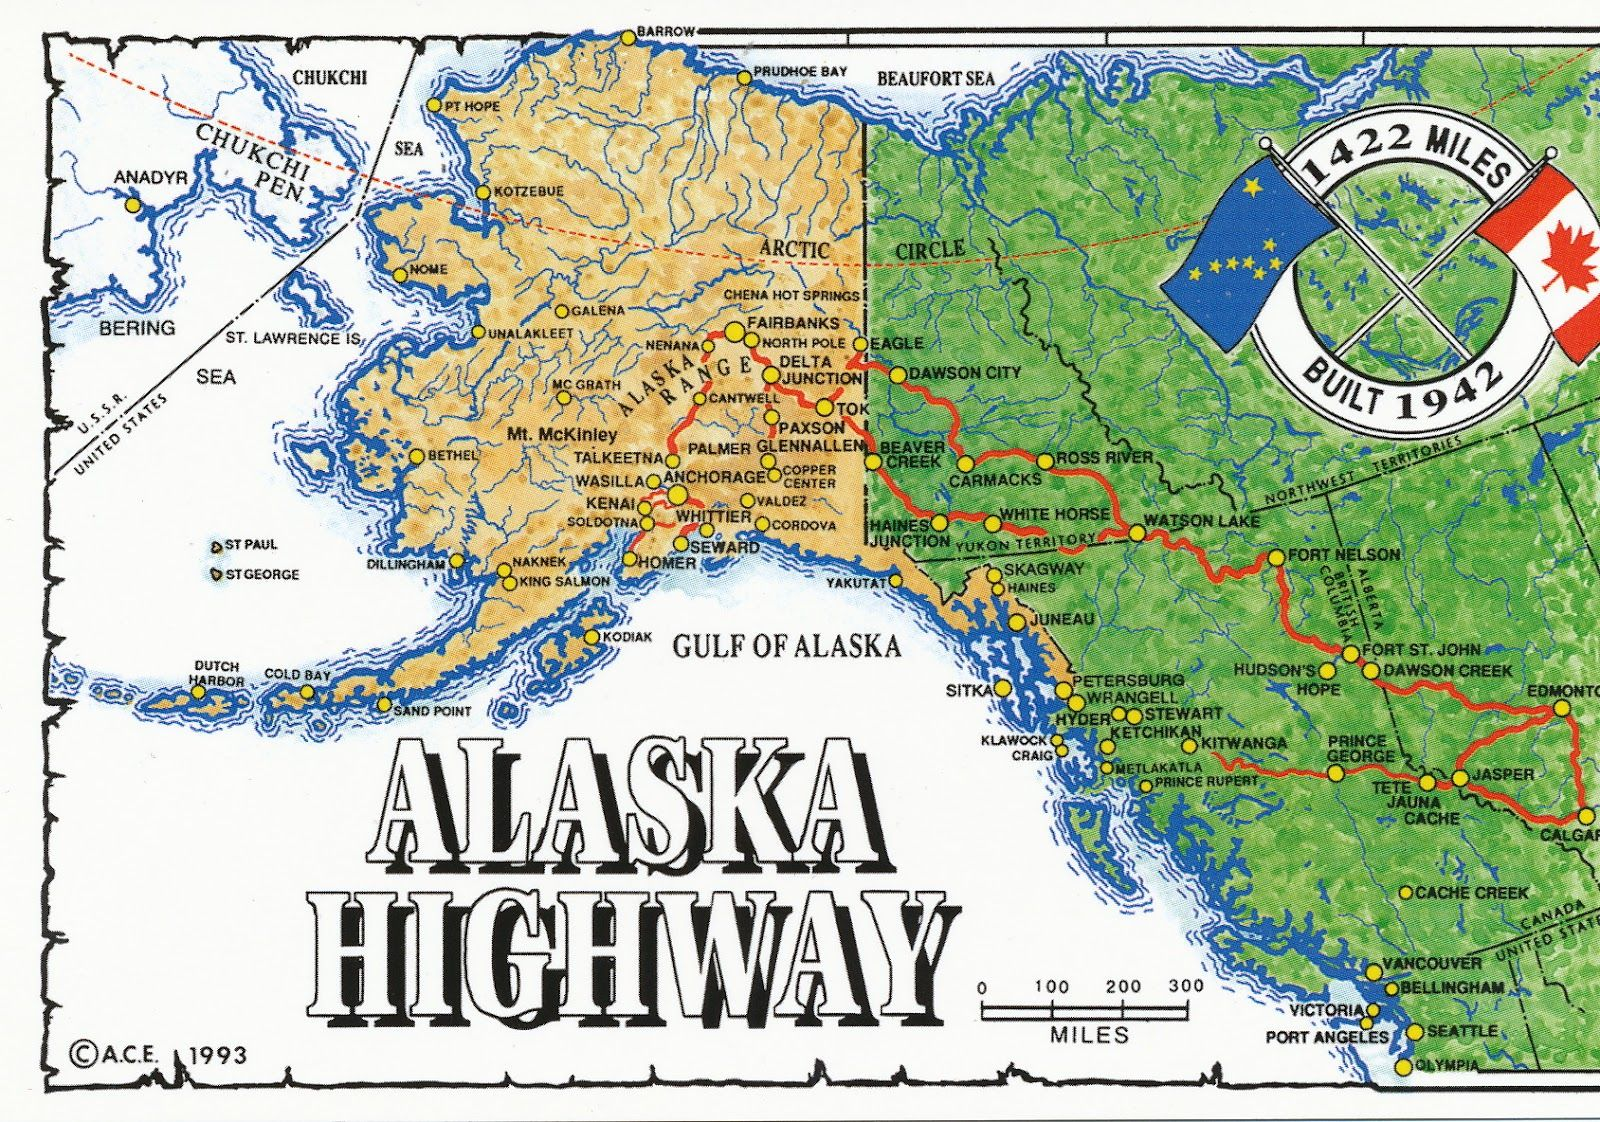 Alaska Online Maps Alaska Highway Map Alaska Travel - Map of alaska and canada